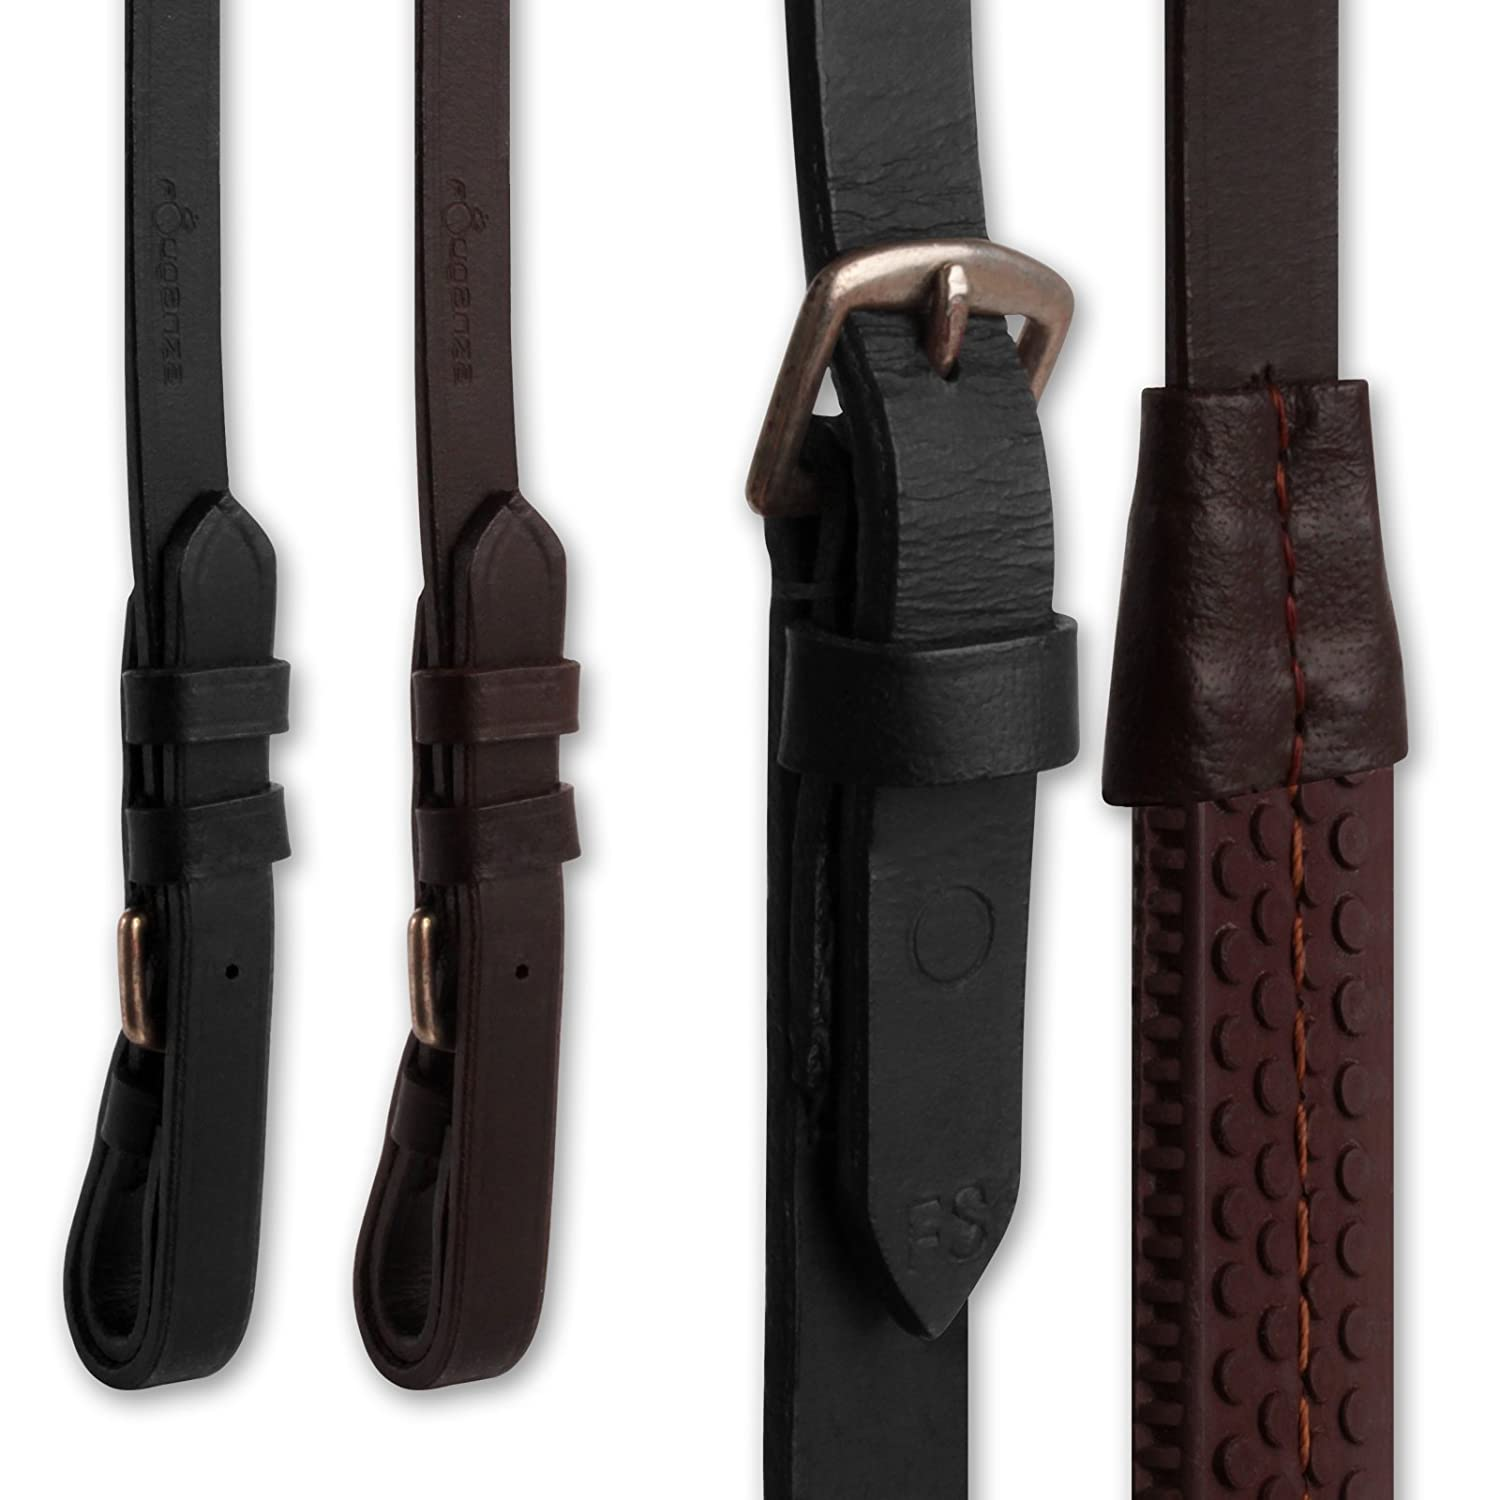 Knight Rider Finest Imported Leather Rubber Grip Horse Riding Reins AND Tigerbox® Antibacterial Pen!